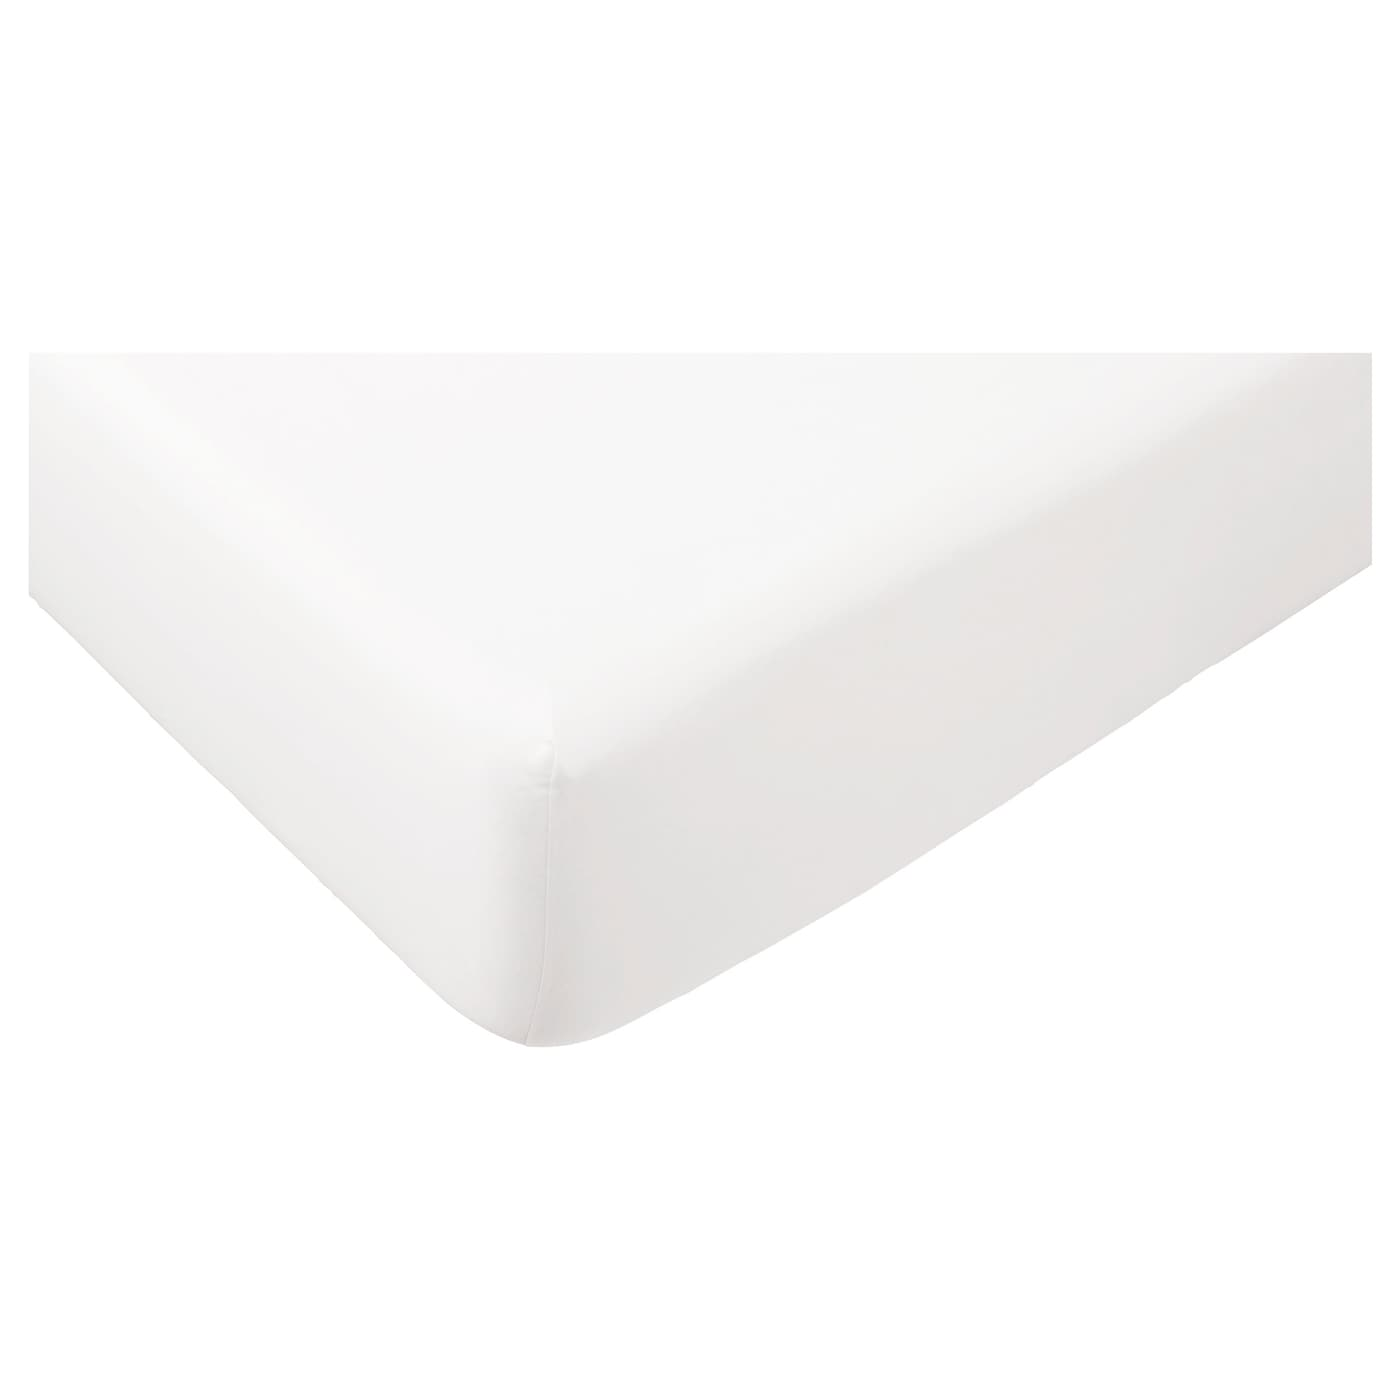 g spa fitted sheet white 160x200 cm ikea. Black Bedroom Furniture Sets. Home Design Ideas